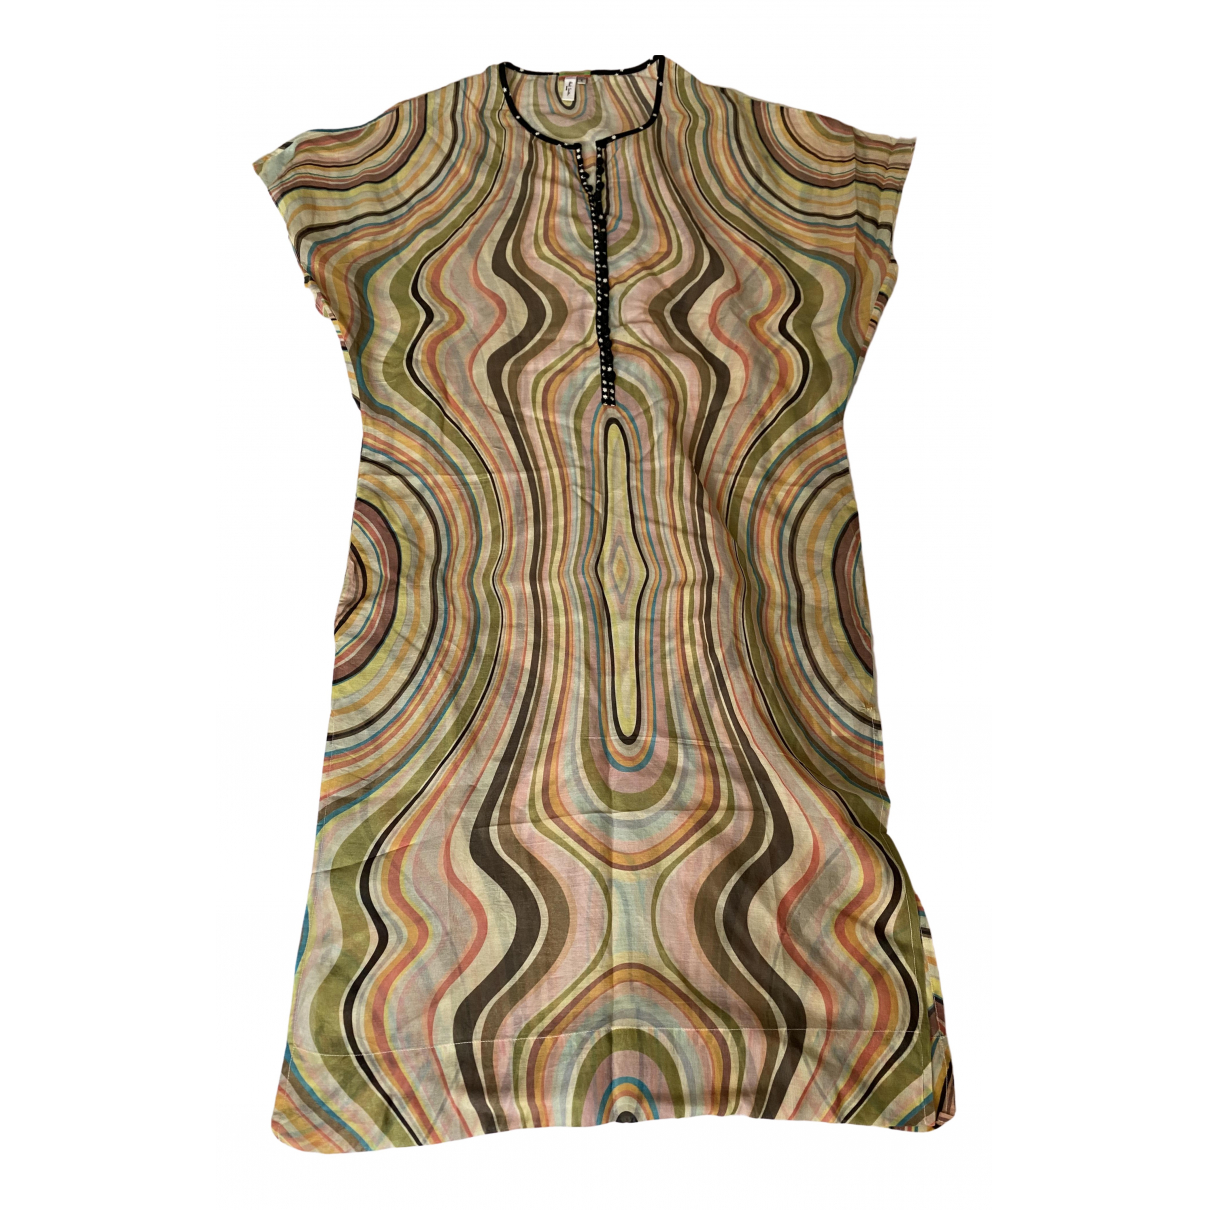 Paul Smith \N Cotton dress for Women S International